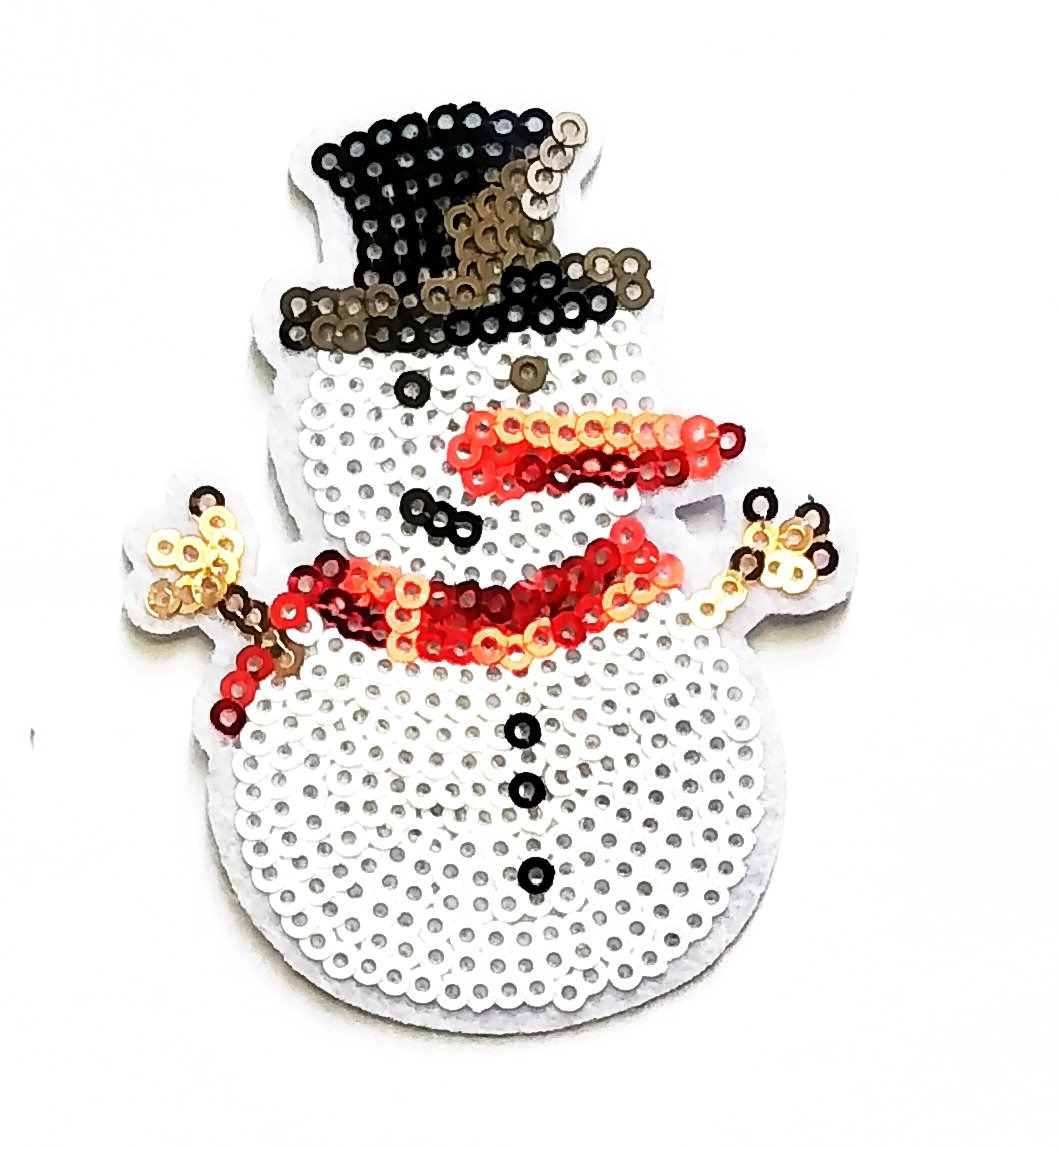 66239d851f7 Application Snowman Patch Sequins Christmas Snowman Cartoon kid Patch Sew  Iron on Embroidered Applique Symbol Jacket T-shirt Badge Costume for  Birthday Gift